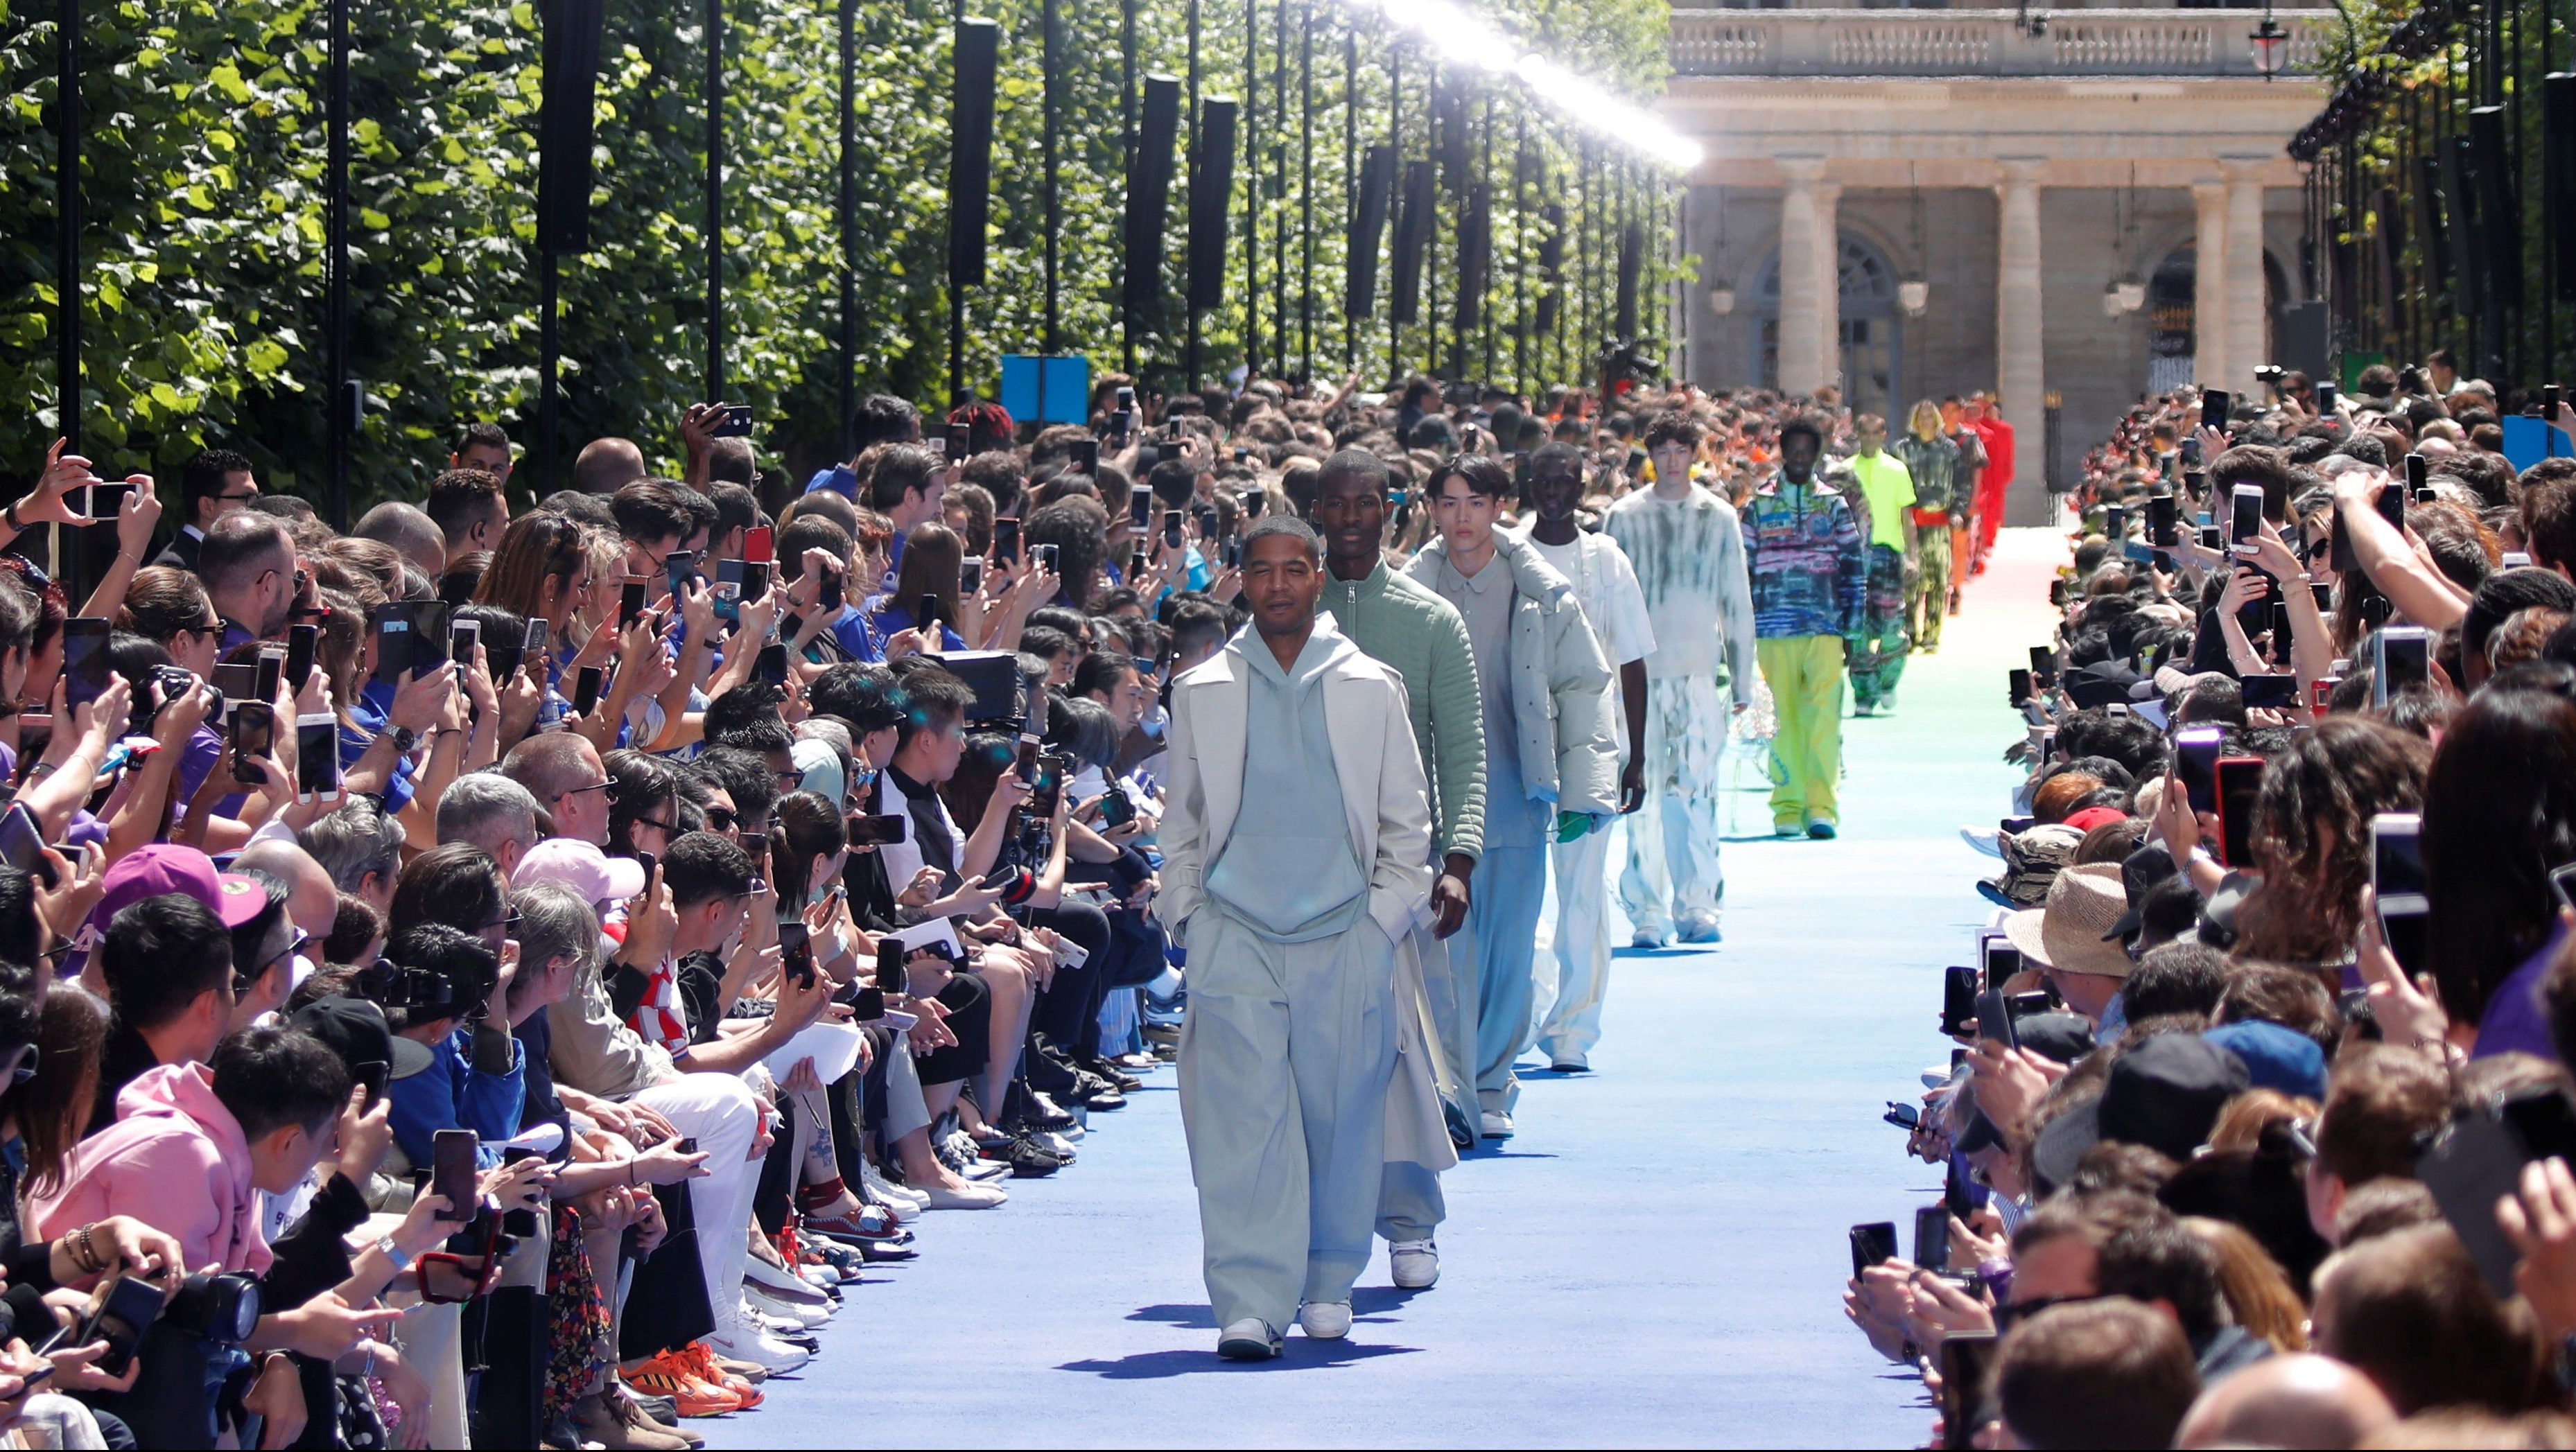 Models present creations by designer Virgil Abloh as part of his Spring/Summer 2019 collection show for Louis Vuitton fashion house during Men's Fashion Week in Paris, France, June 21, 2018. REUTERS/Charles Platiau - RC11A1D8E590